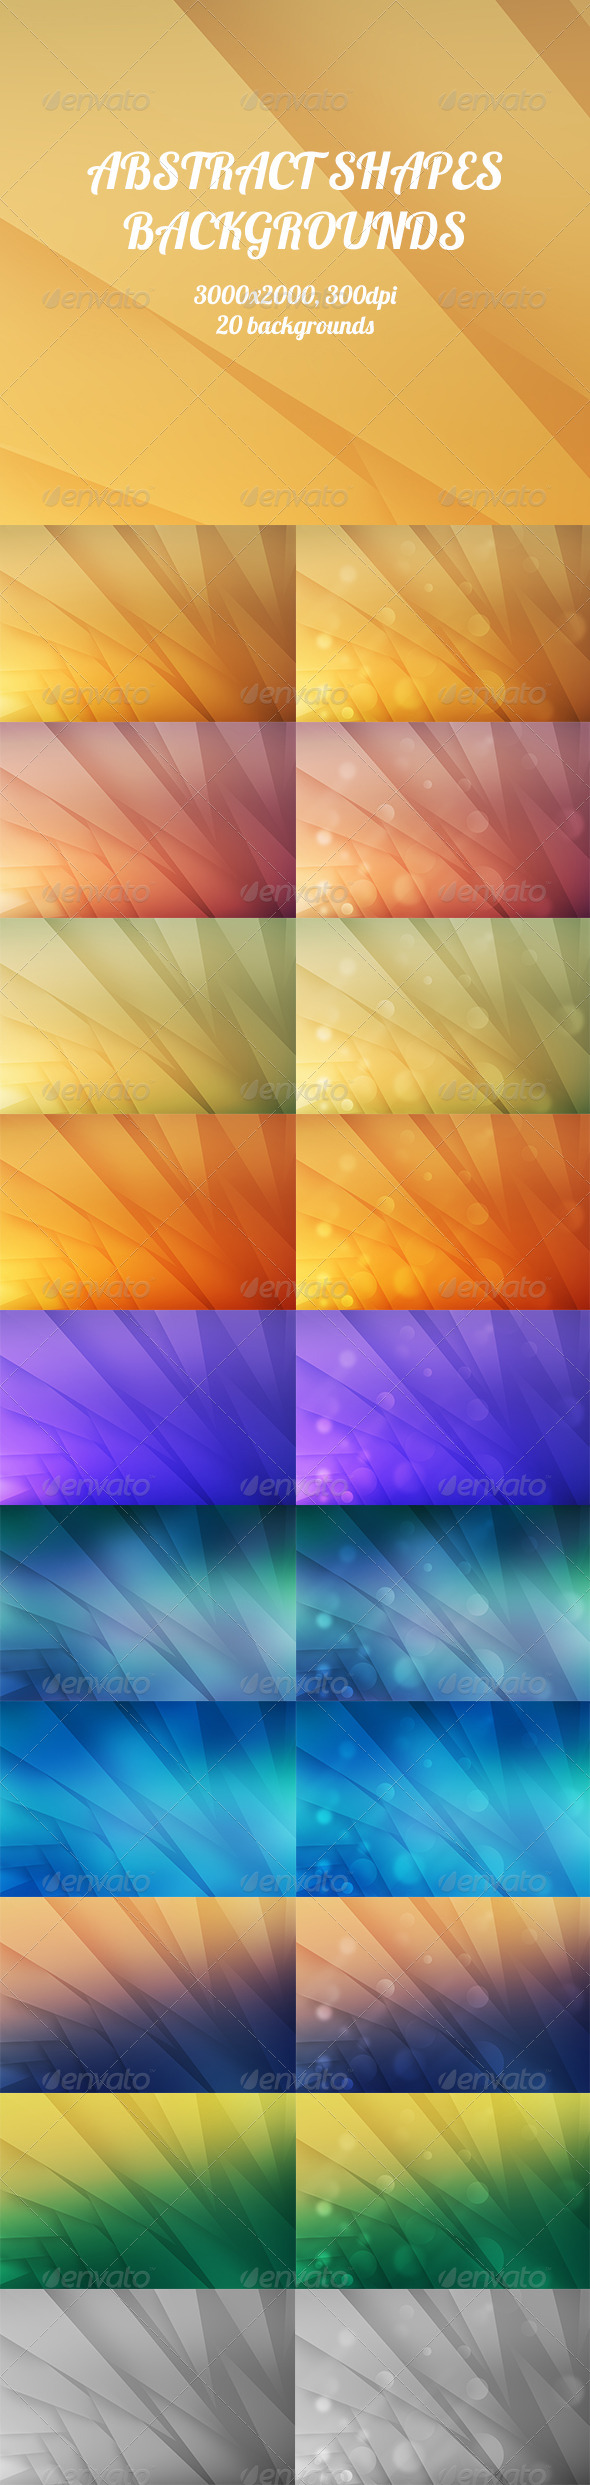 GraphicRiver Abstract Shapes Backgrounds 8720389